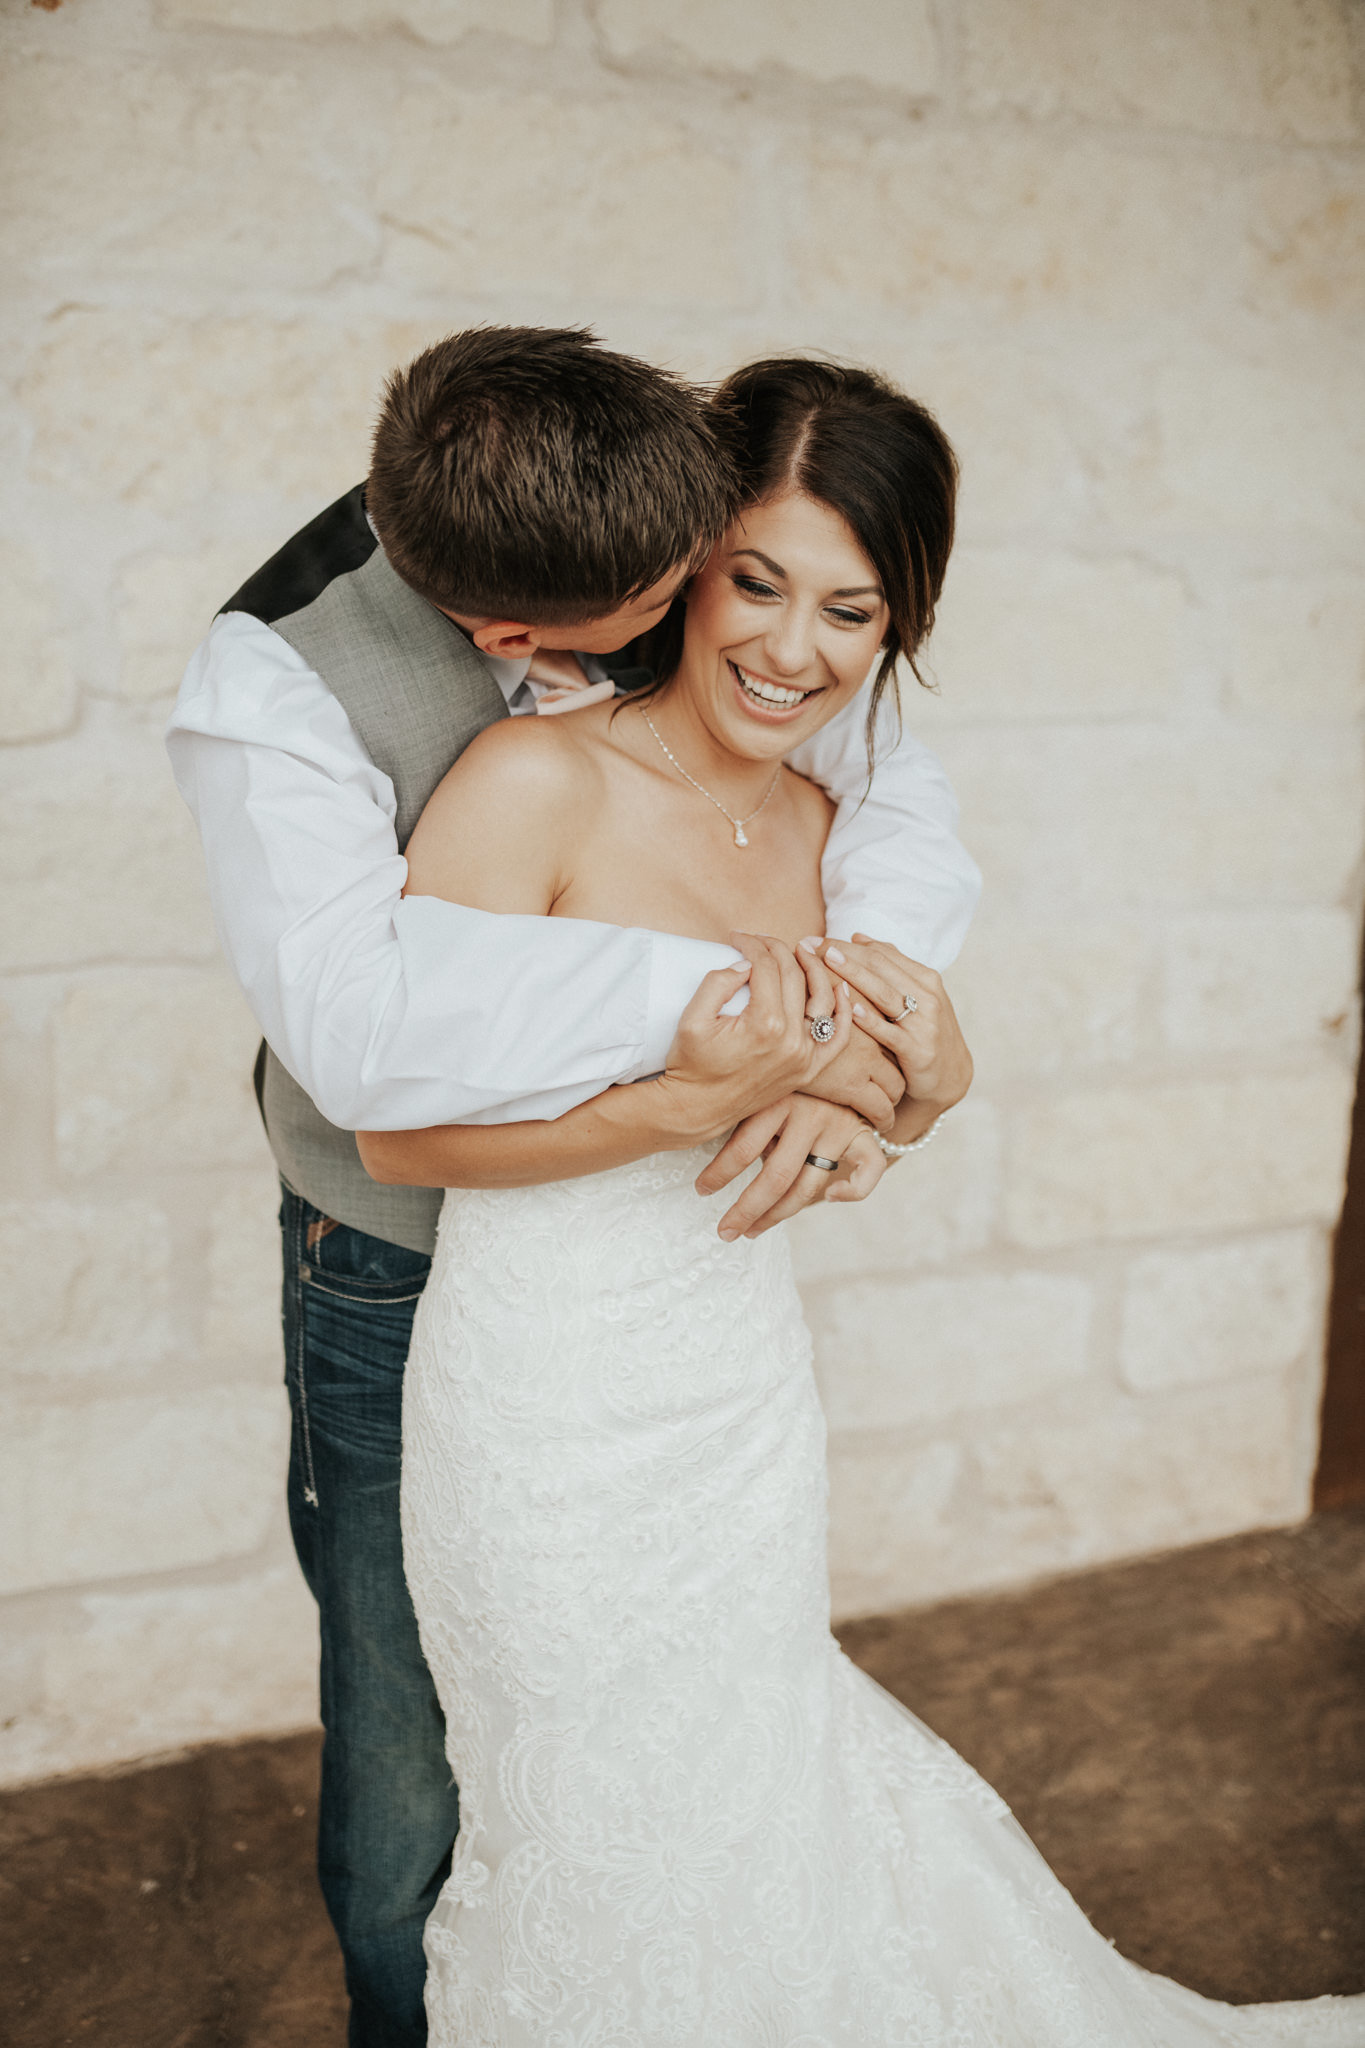 A bride and groom photo at their Oklahoma wedding at The Springs Event Venue.